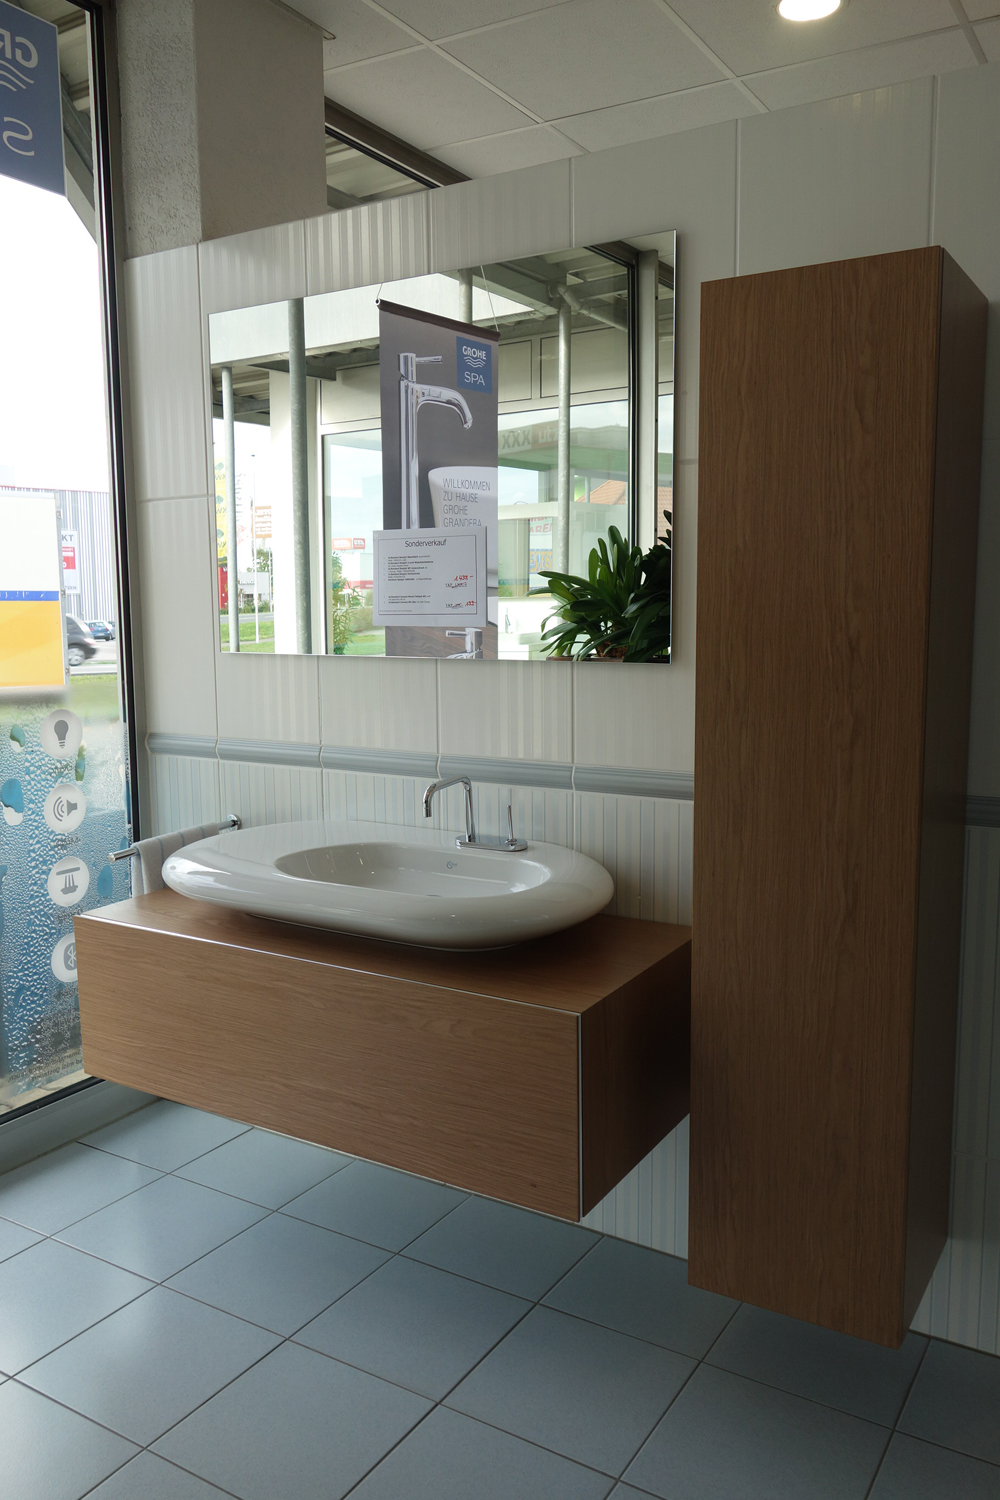 download Prolegomena Mathematica: From Apollonius of Perga to the Late Neoplatonism. With an Appendix on Pappus and the History of